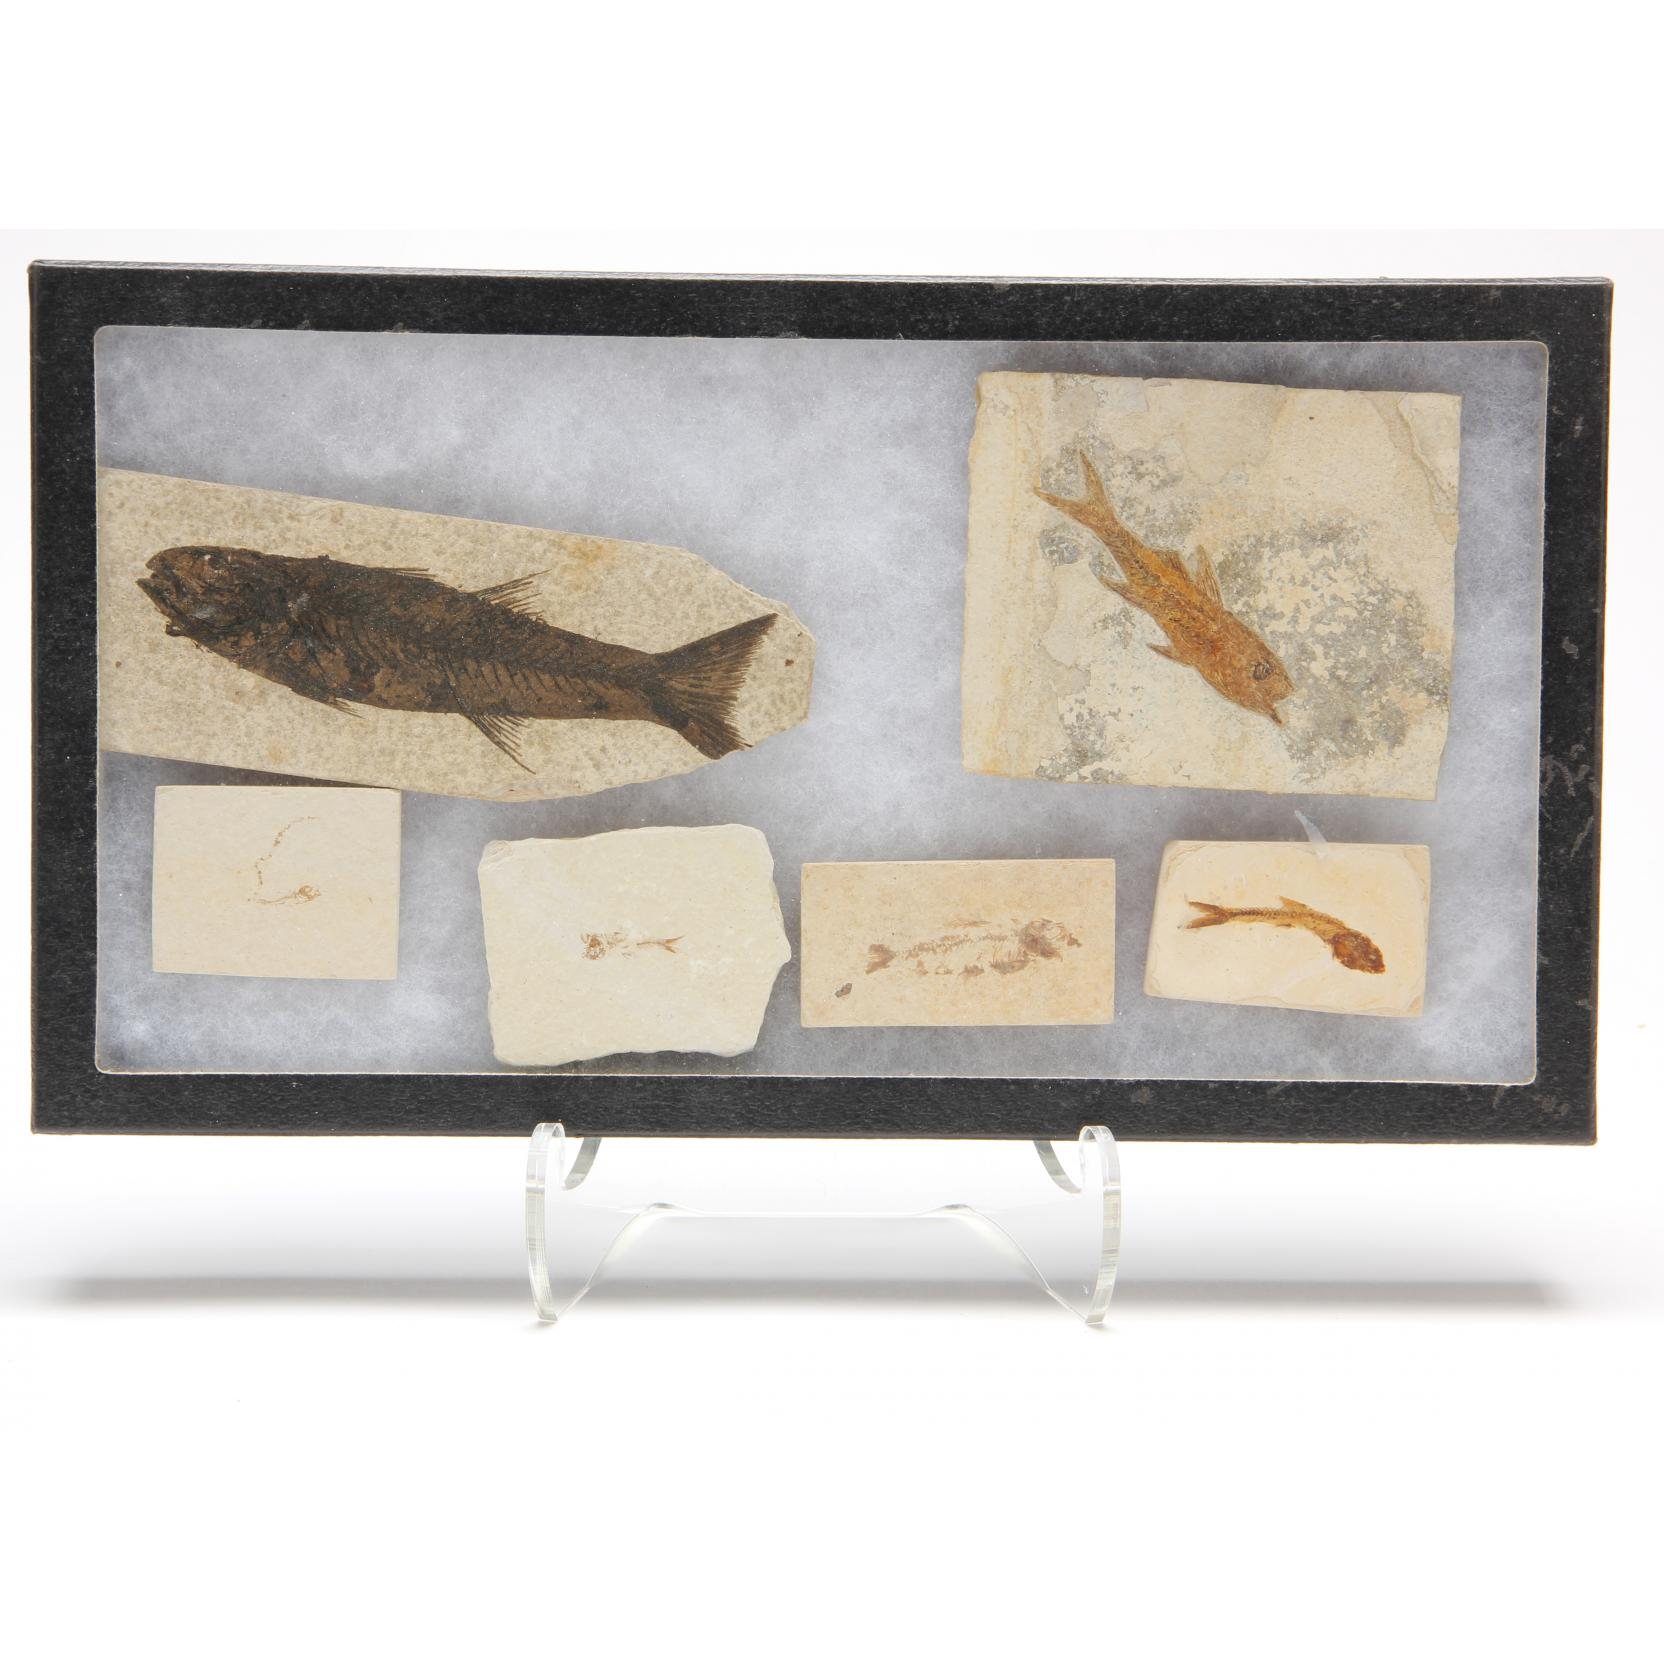 six-fossil-fish-from-texas